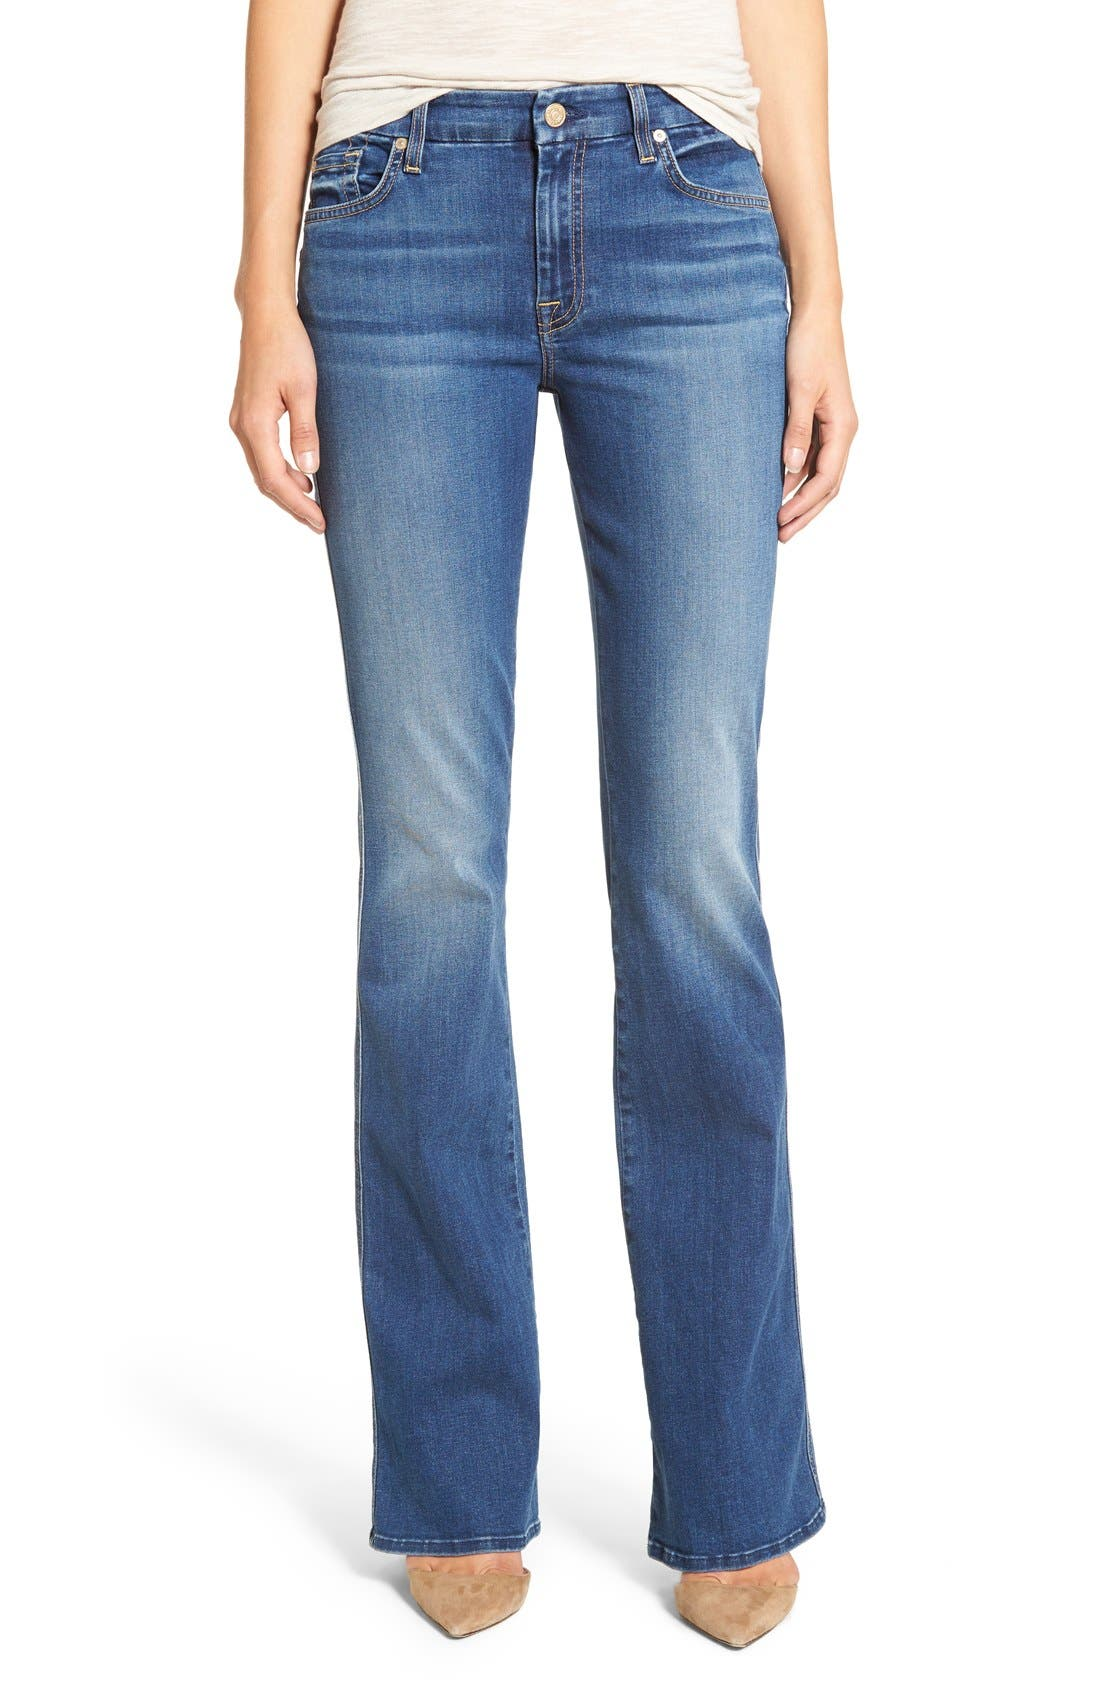 'b(air) - A Pocket' Flare Jeans,                         Main,                         color, Reign